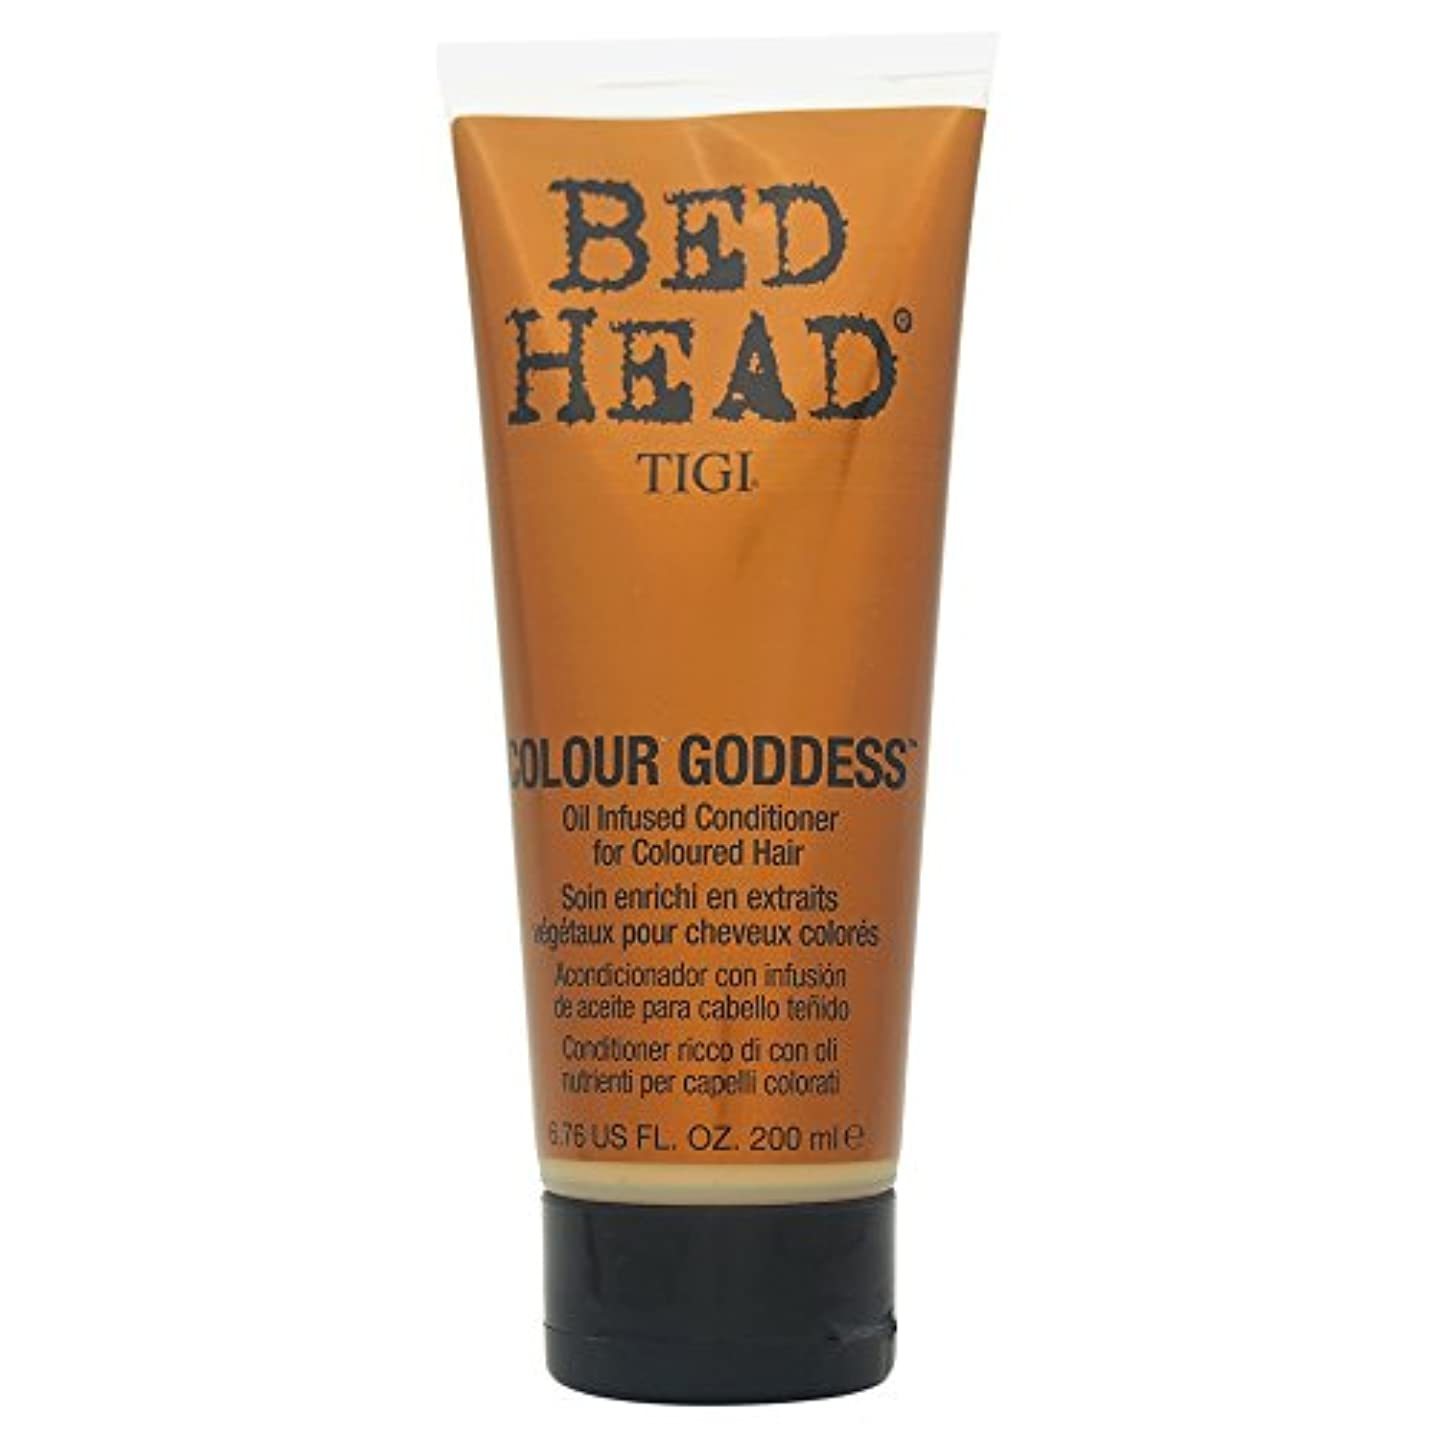 Tigi Bed Head Colour Goddess Oil Infused Conditioner 200ml [並行輸入品]